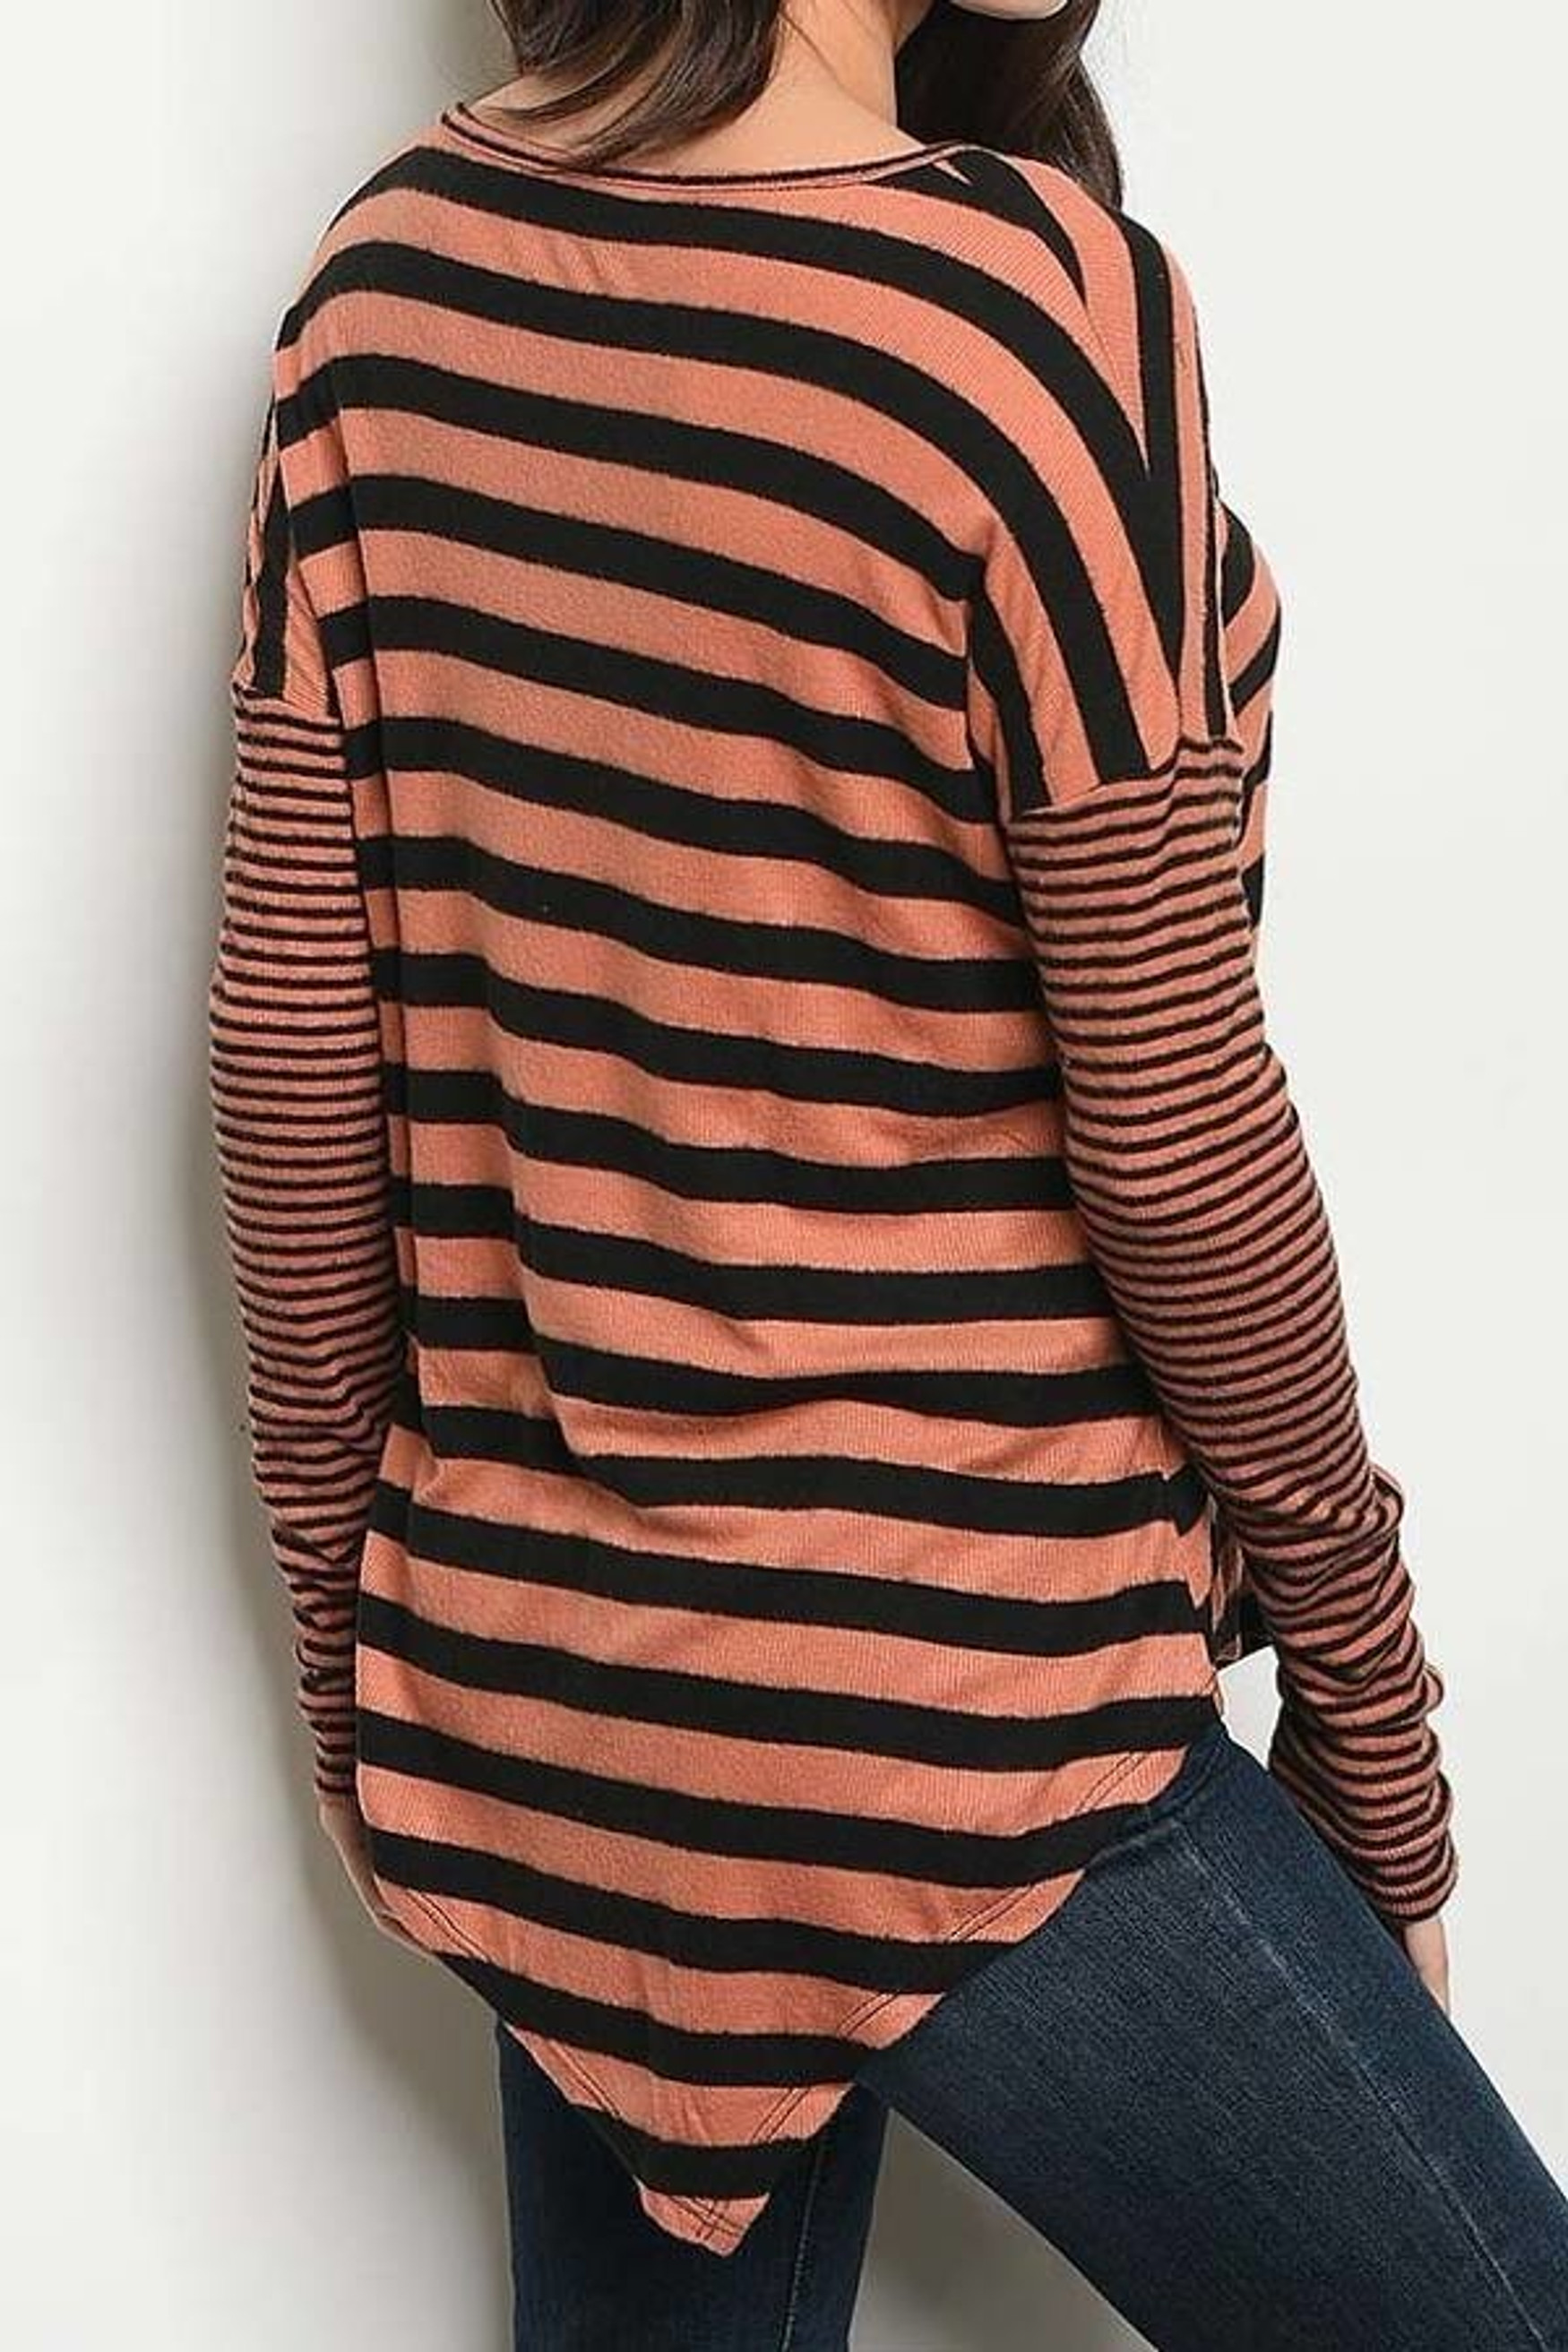 Earth/Black Crisscross Keyhole Mixed Stripe Asymmetrical Hem Long Sleeve Top